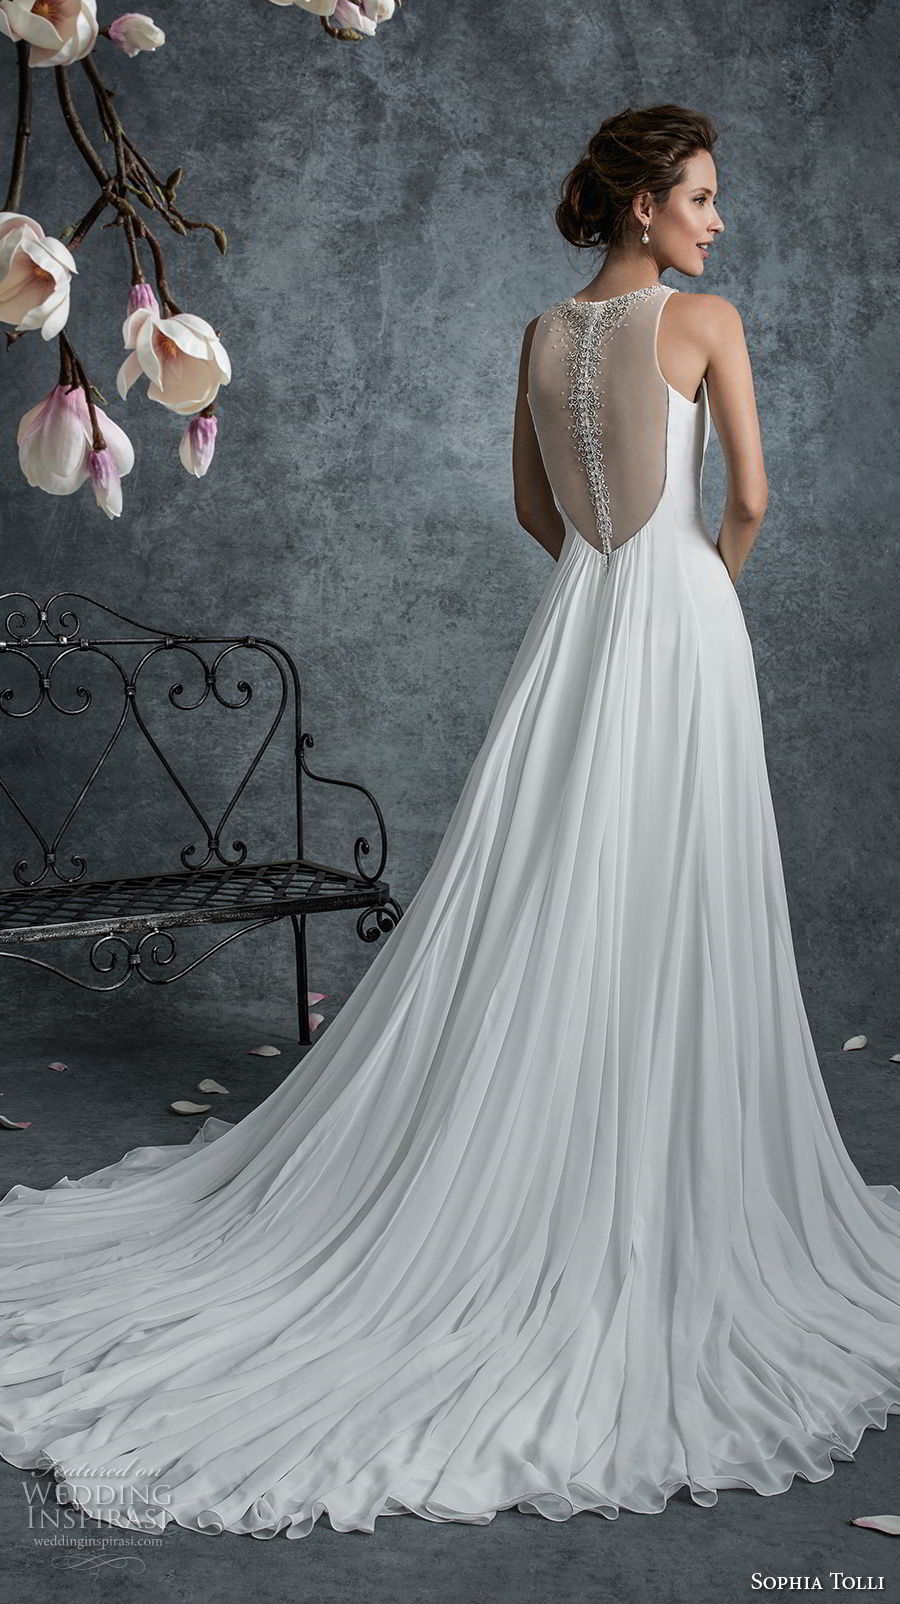 sophia tolli fall 2017 bridal sleeveless illusion jewel deep v neckline simple grecian romantic a line wedding dress sheer back chapel train (17) bv